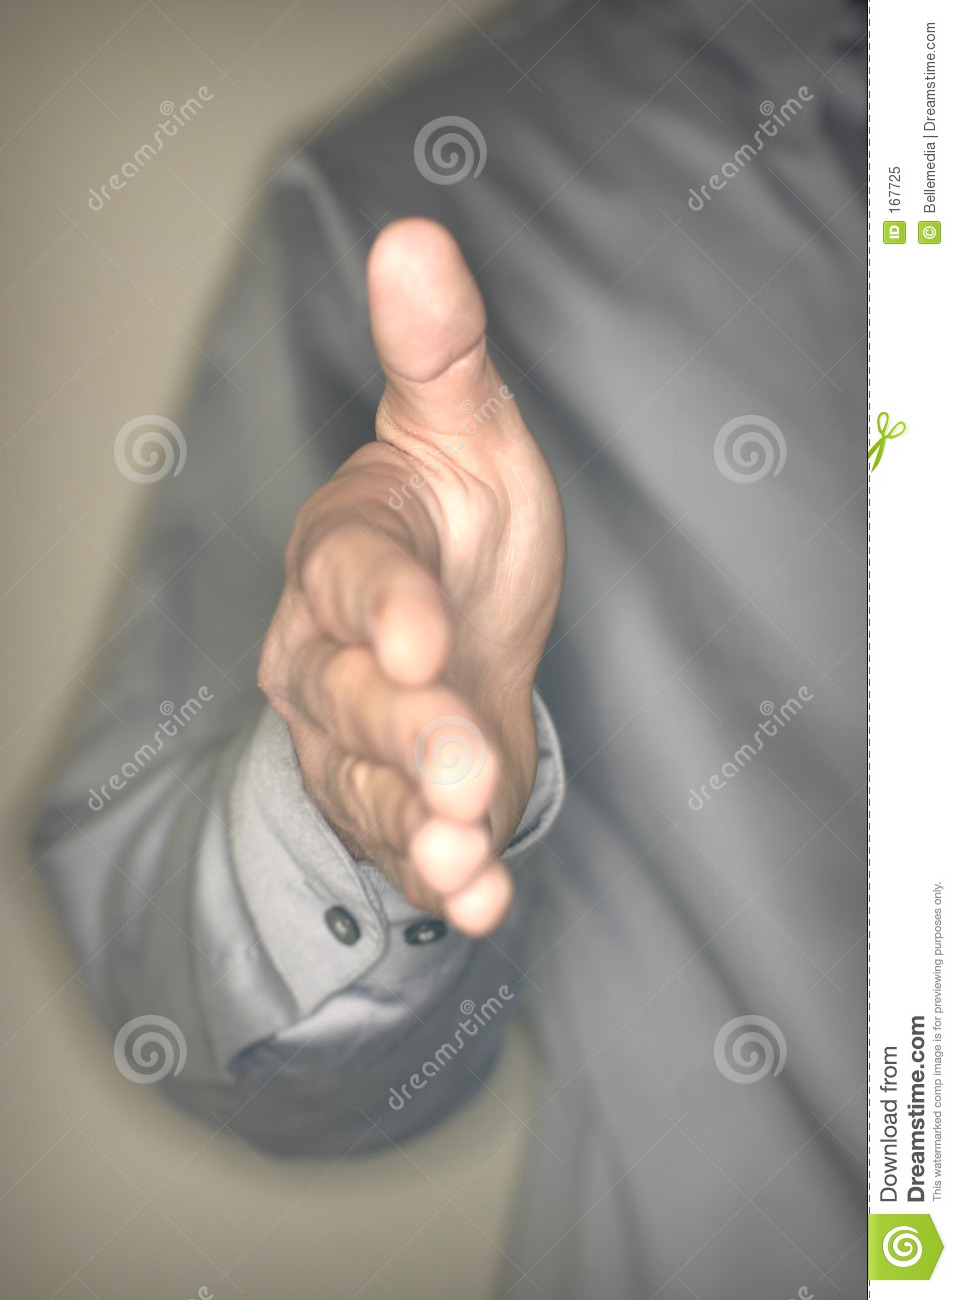 Offer to Shake Hands